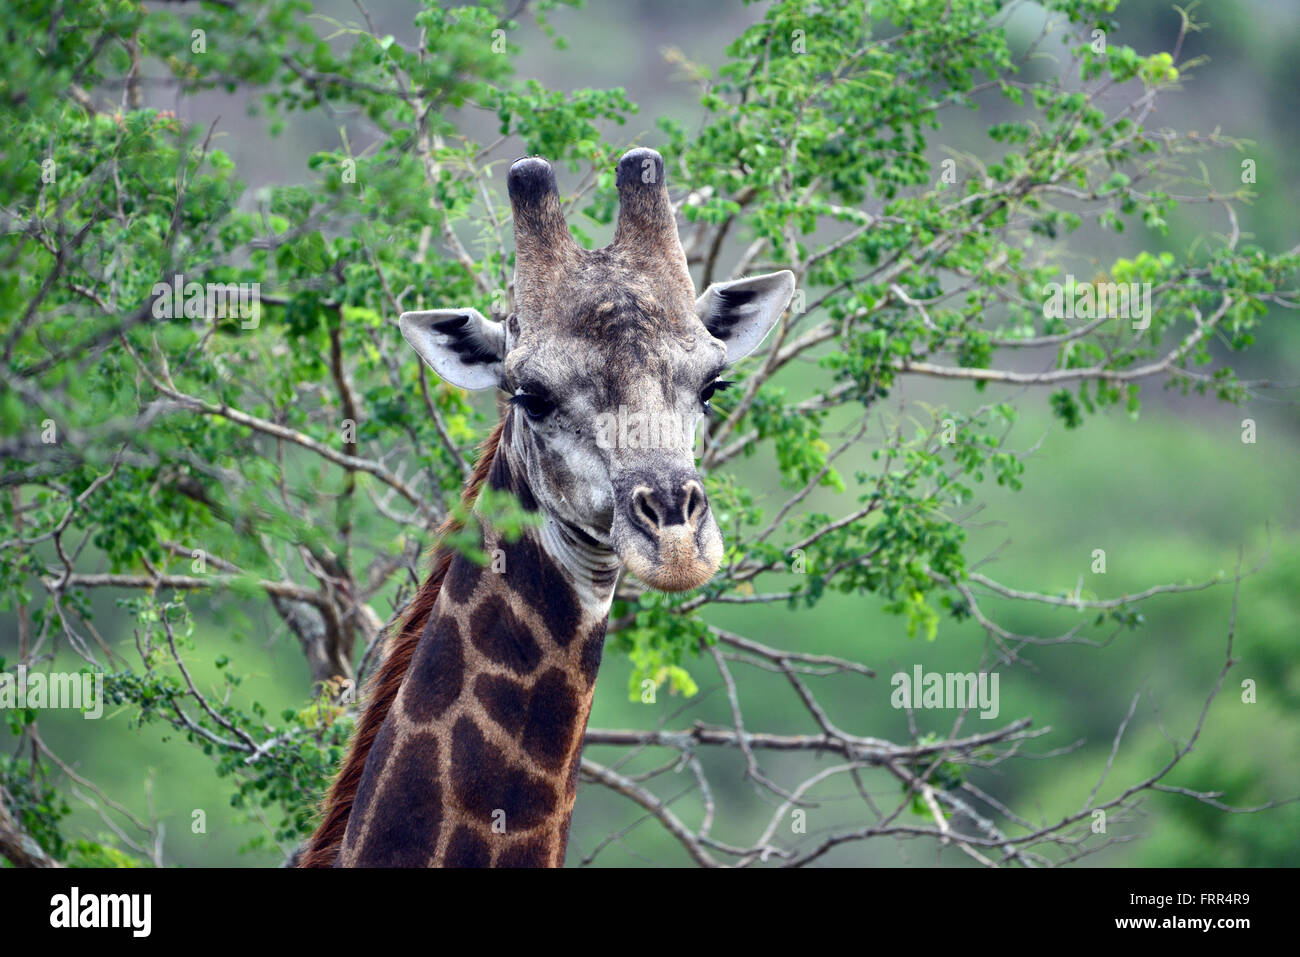 Adult Giraffe seen on a game drive at Thanda Private Game Reserve, Kwa-Zulu Natal, South Africa - Stock Image